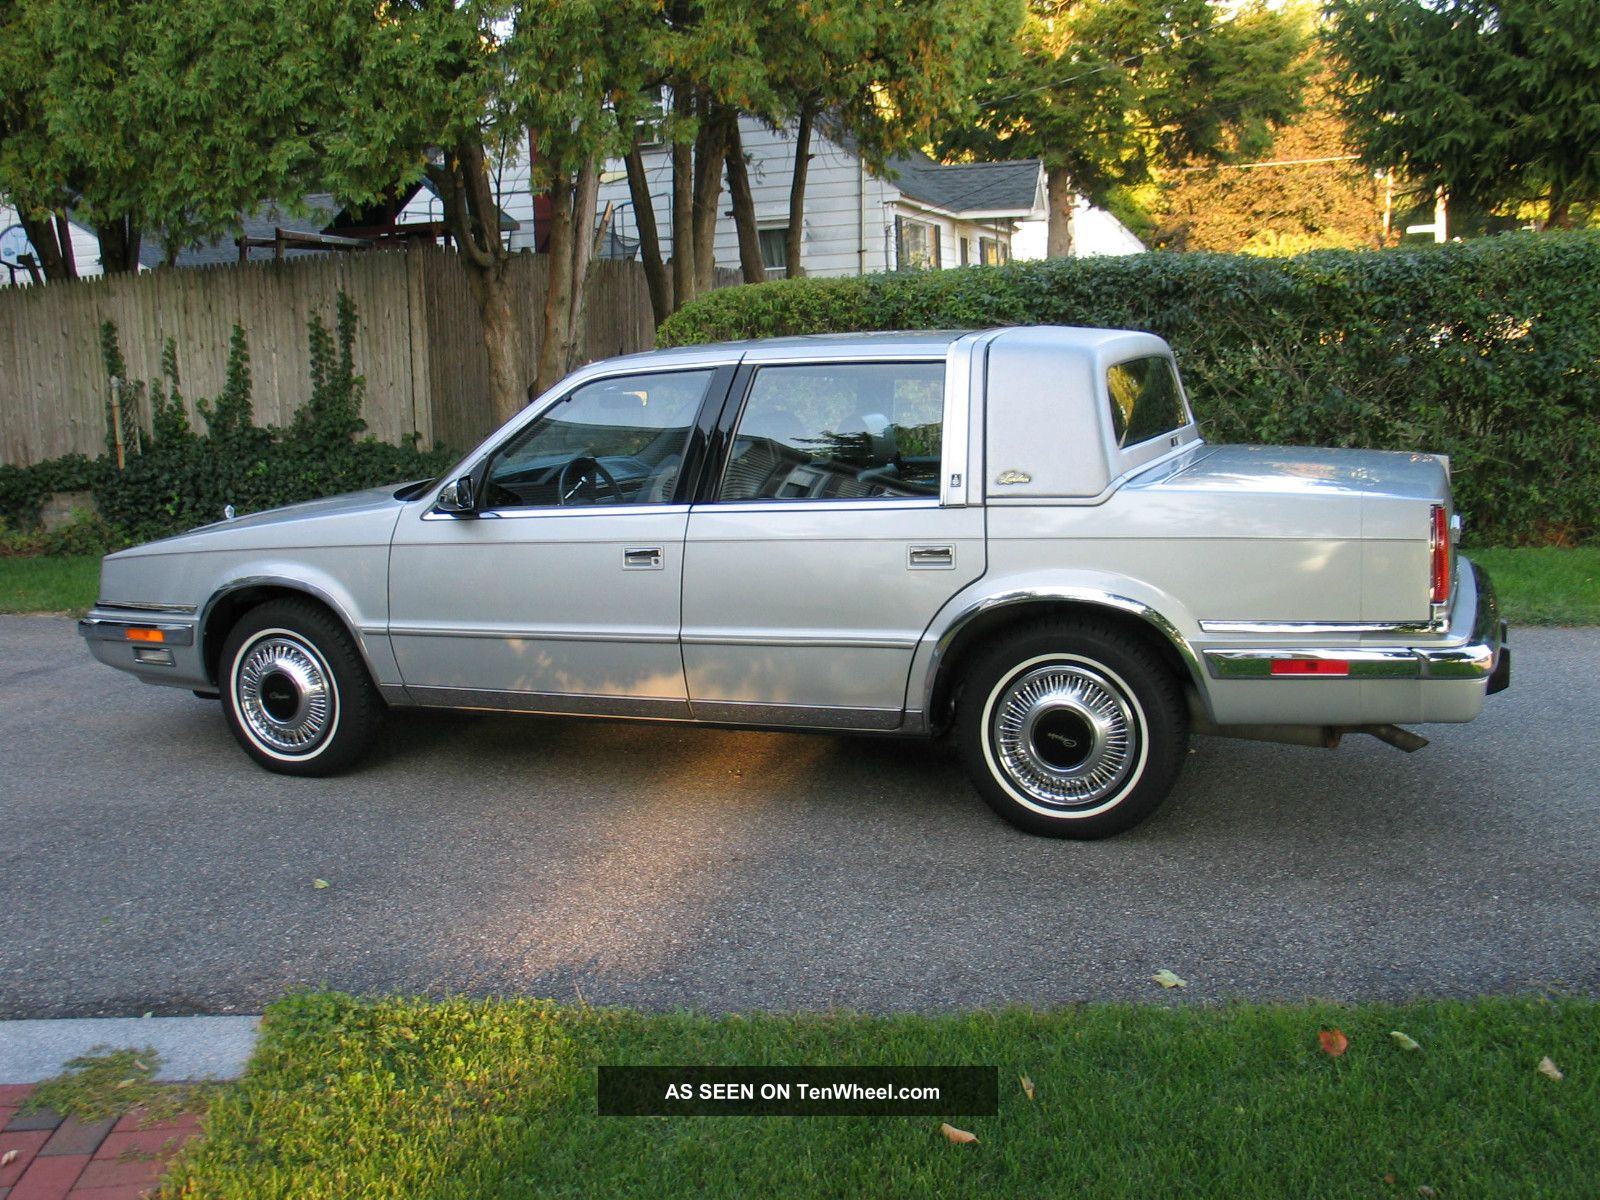 1989 Chrysler Yorker Landau Sedan 4 Door 3 0l Mark Cross Edition